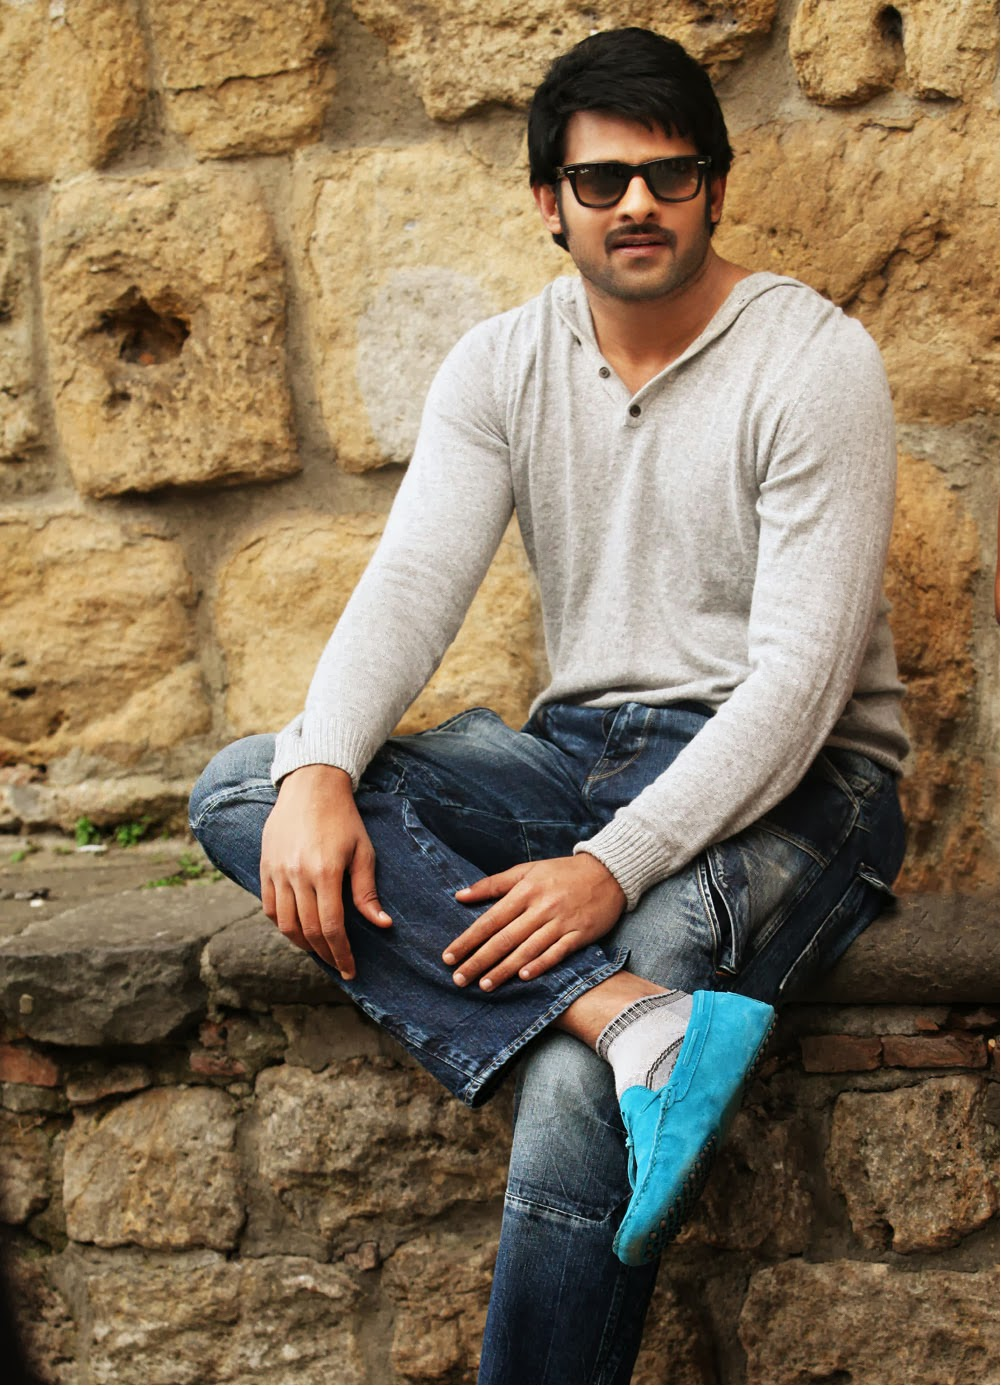 prabhas body measurements,height,weight and more.